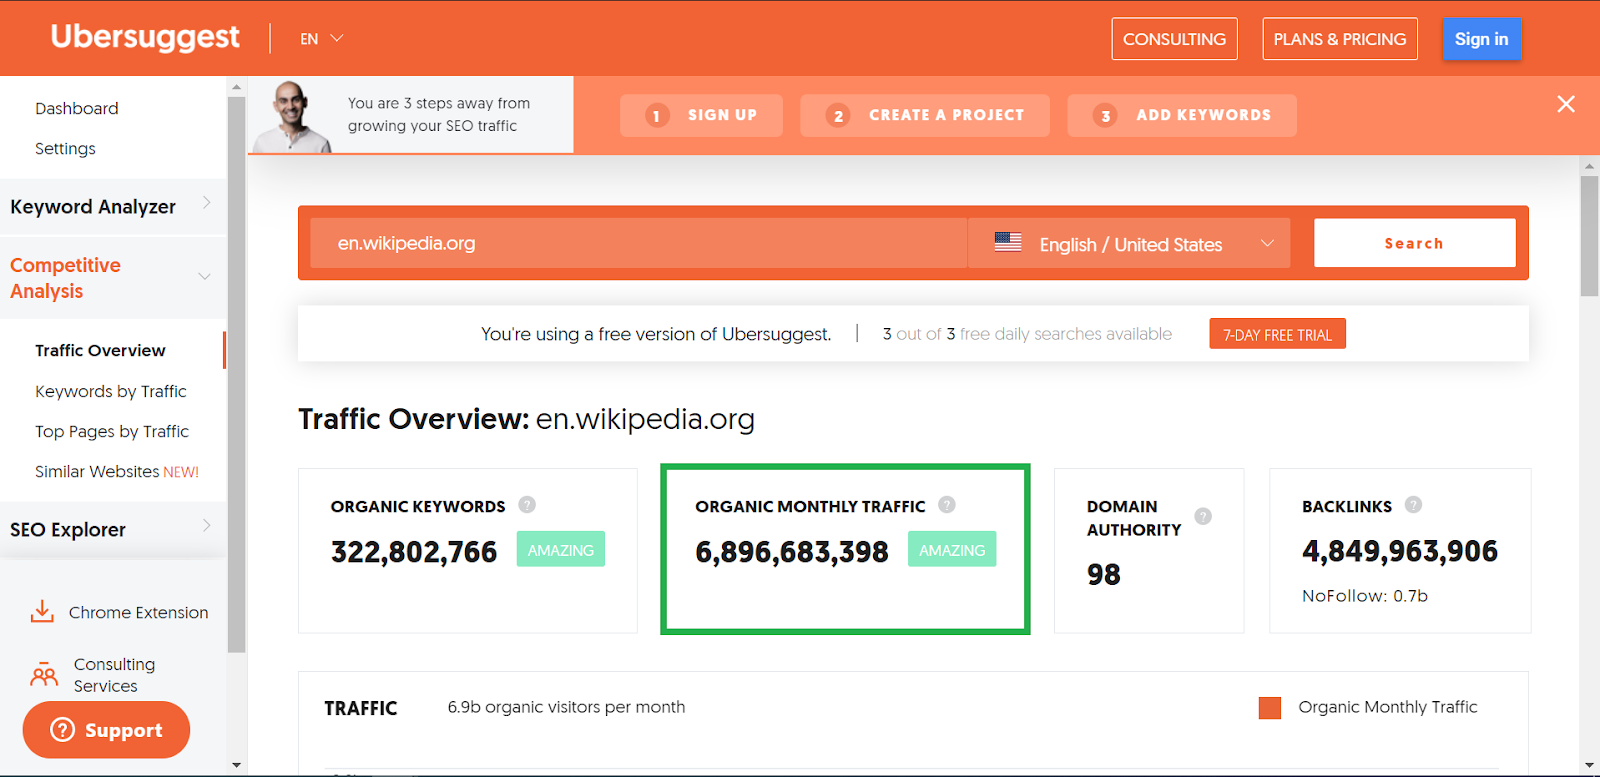 How to find monthly traffic of a website